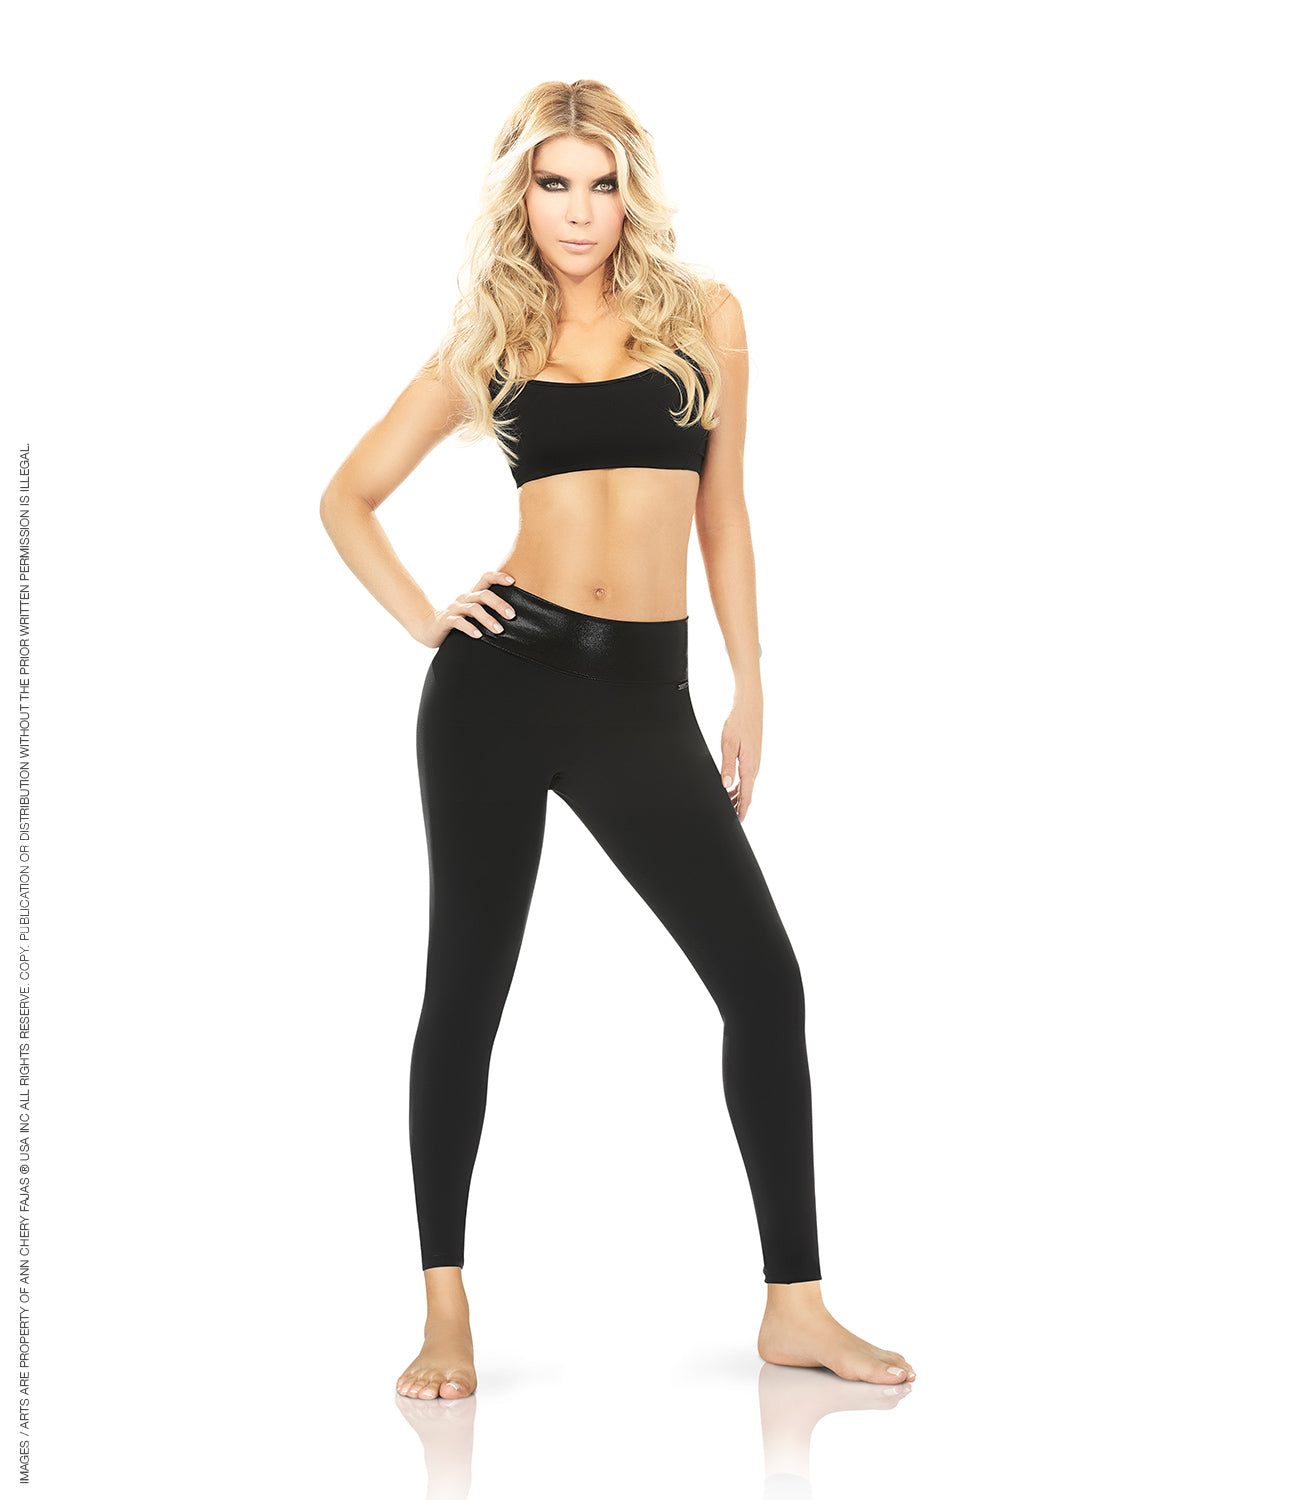 7038 - Metallic Control Leggings - Ann Chery Mexico